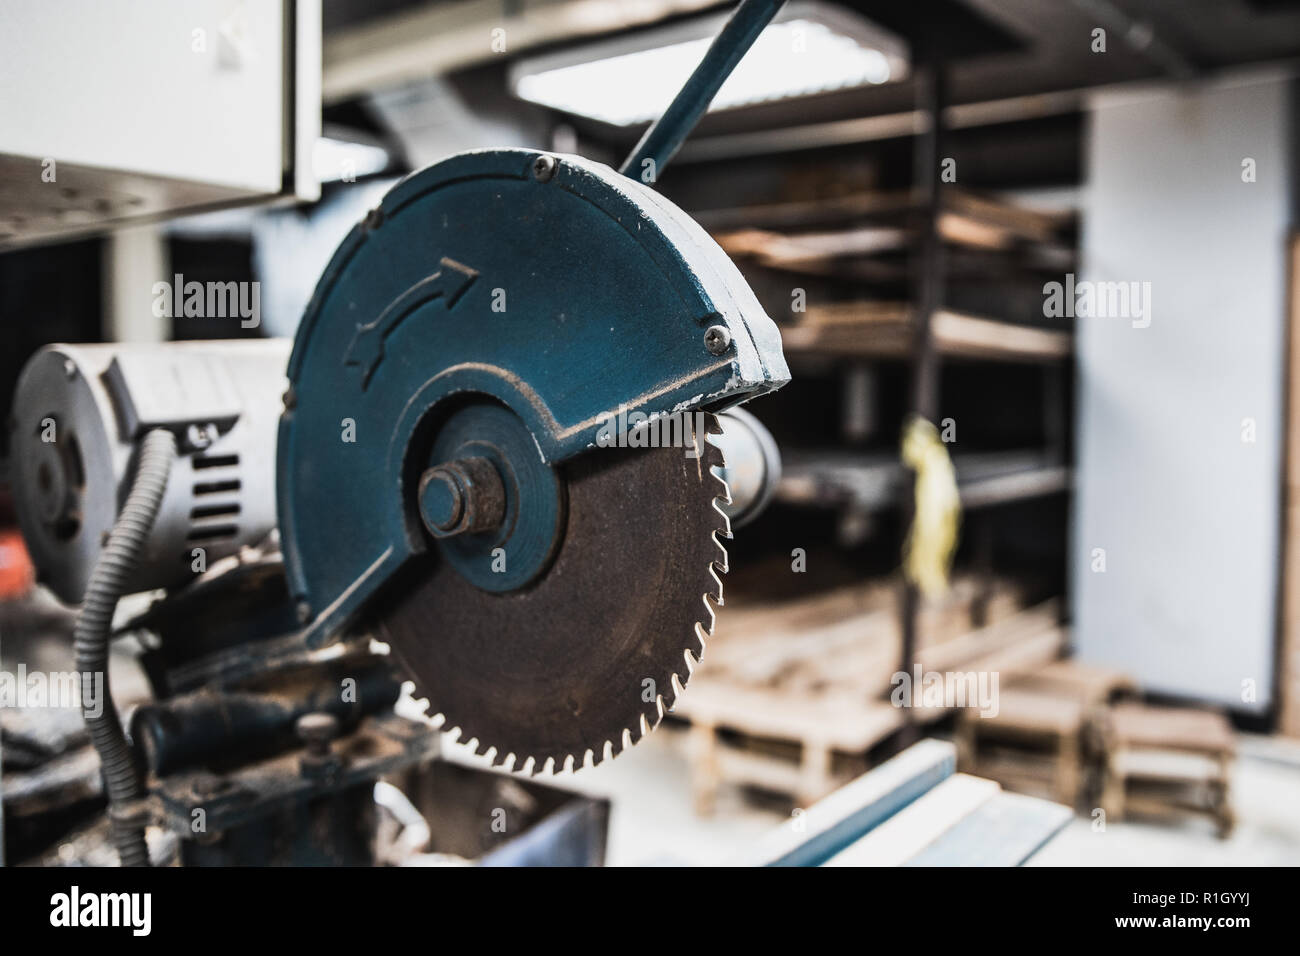 Electric saw with sharp rusted blade installed in workshop room - Stock Image